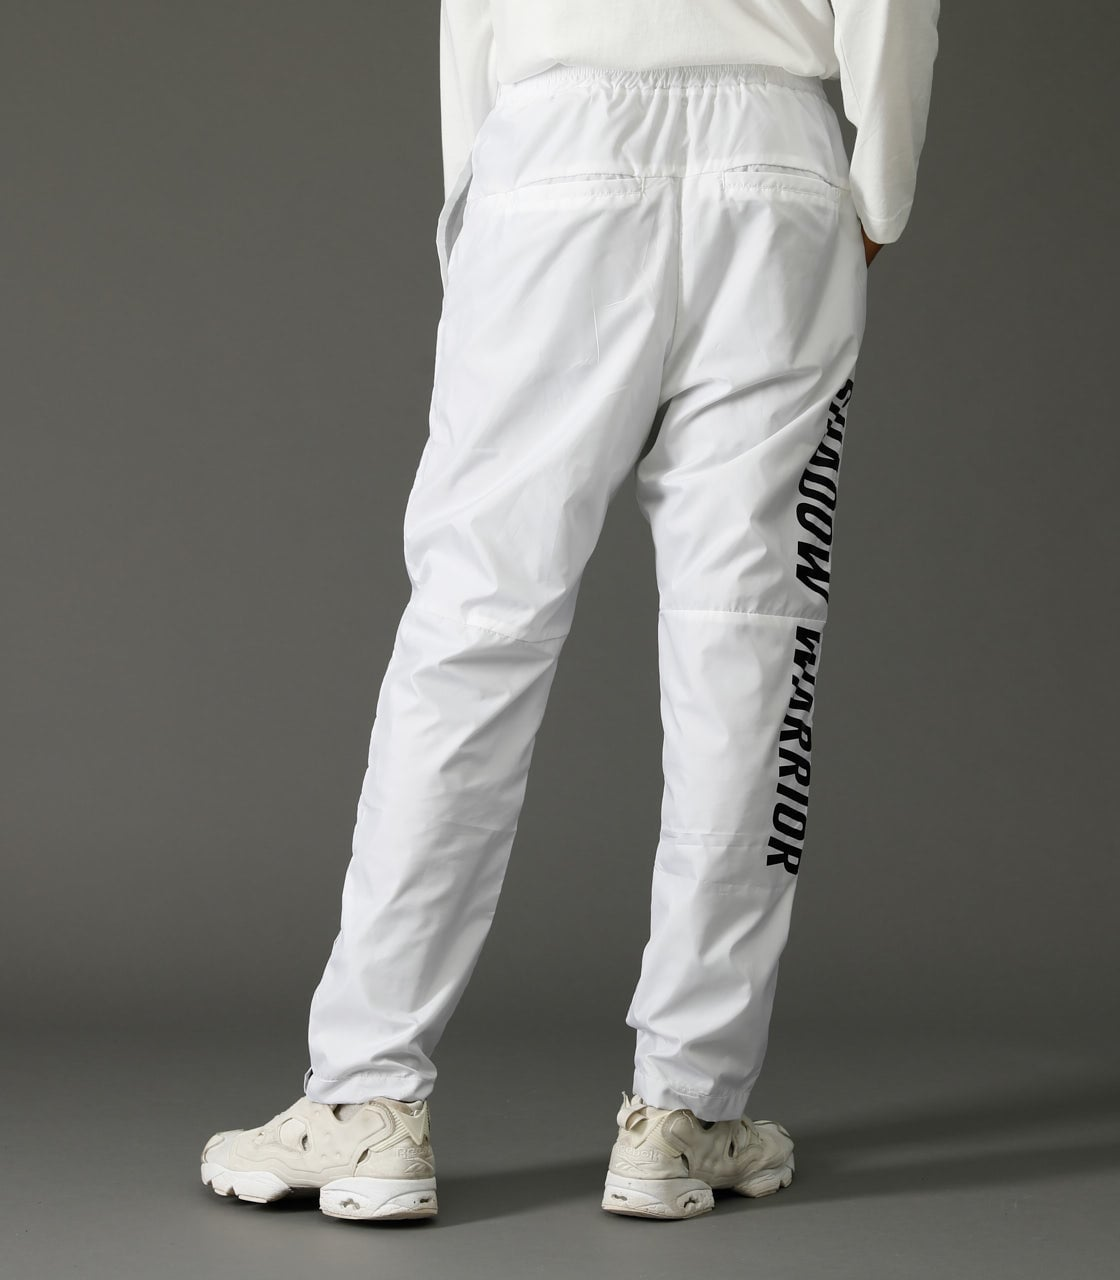 【AZUL BY MOUSSY】CLUB AZUL WARMUP PANTS【MOOK47掲載 97026】 詳細画像 WHT 3